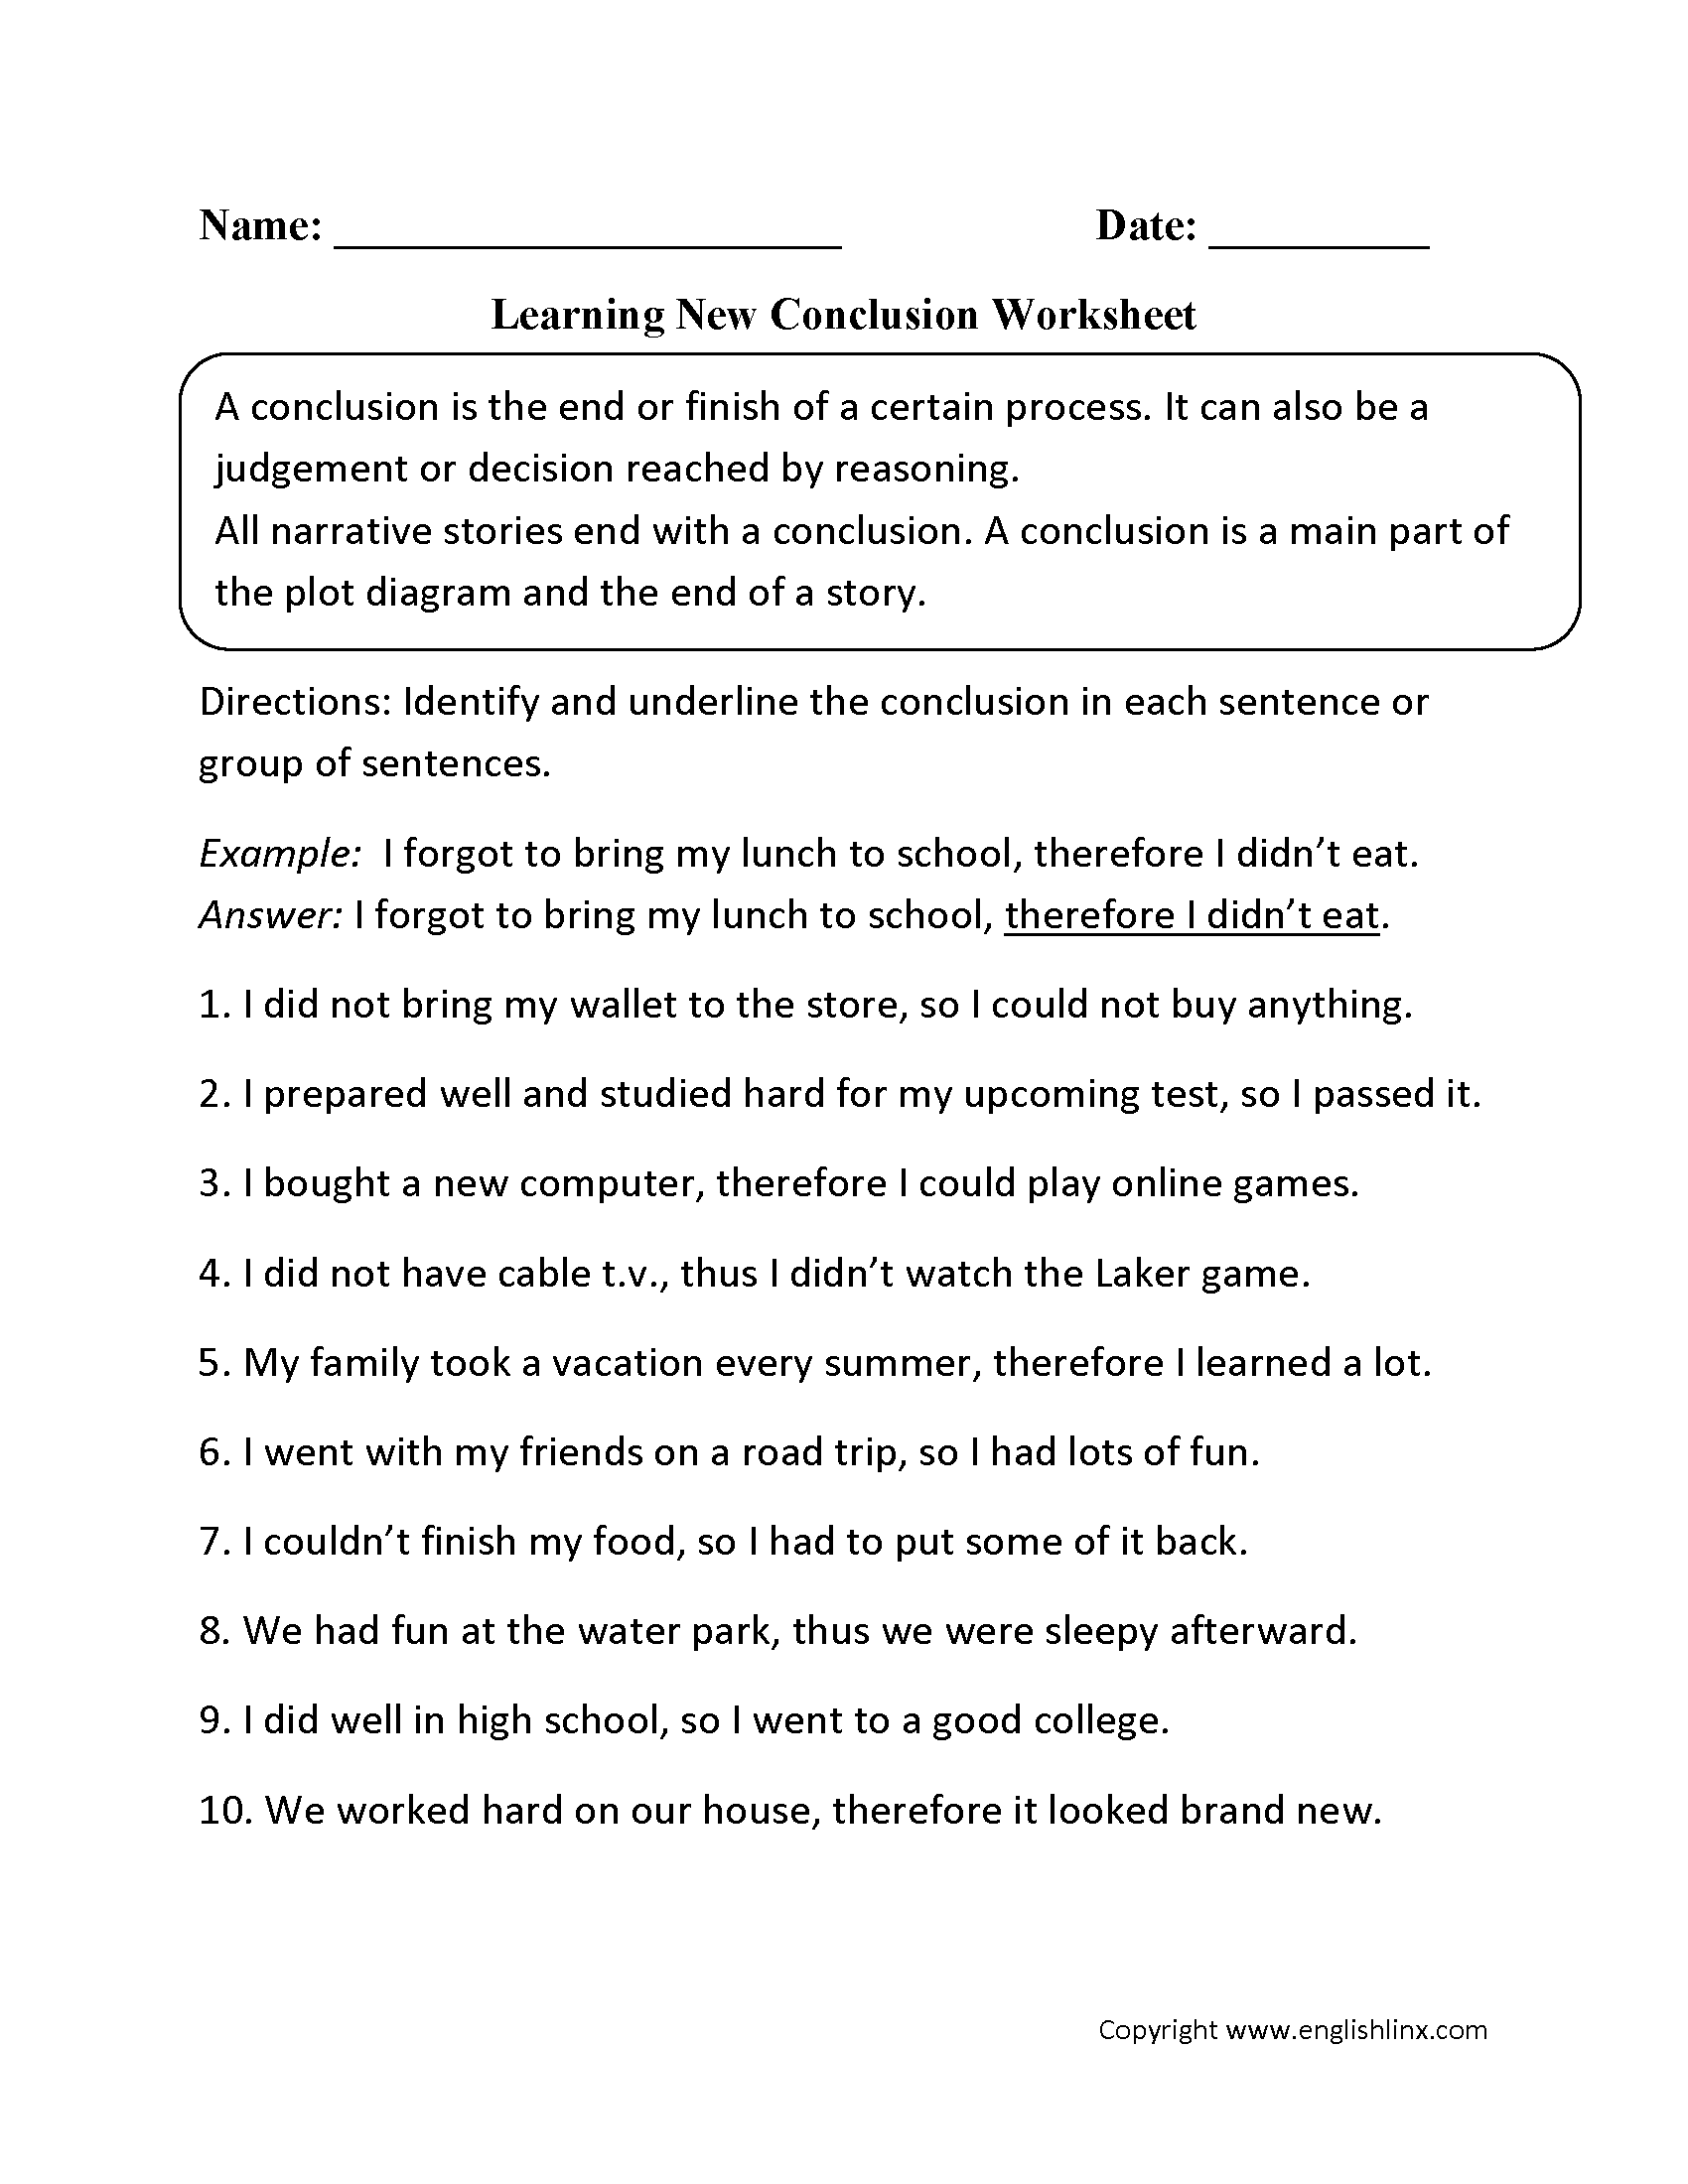 Learning New Conclusion Worksheet